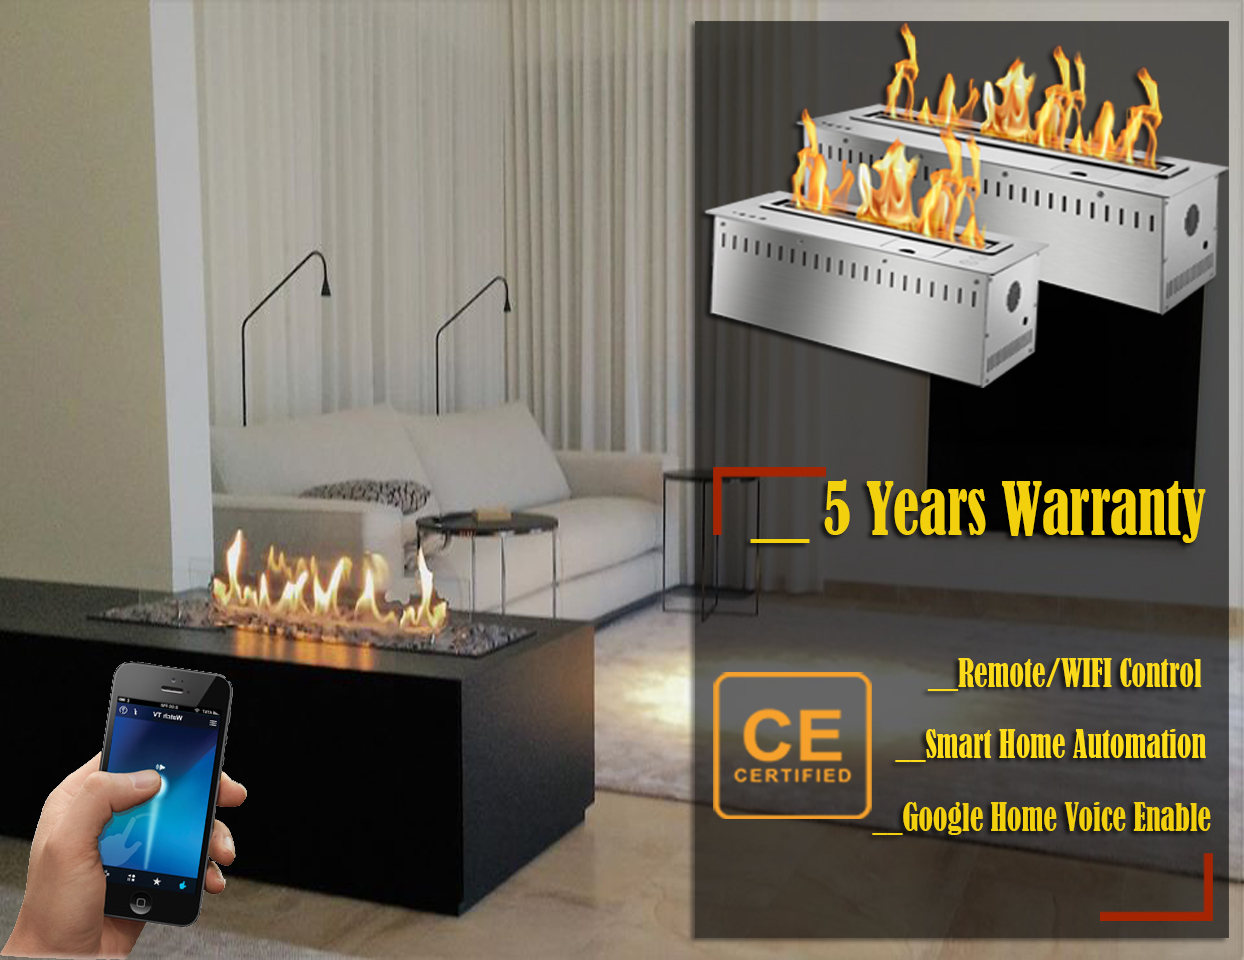 Hot Sale 60 Inches Smart Ethanol Fire Wifi Burner Eco Fireplace Insert